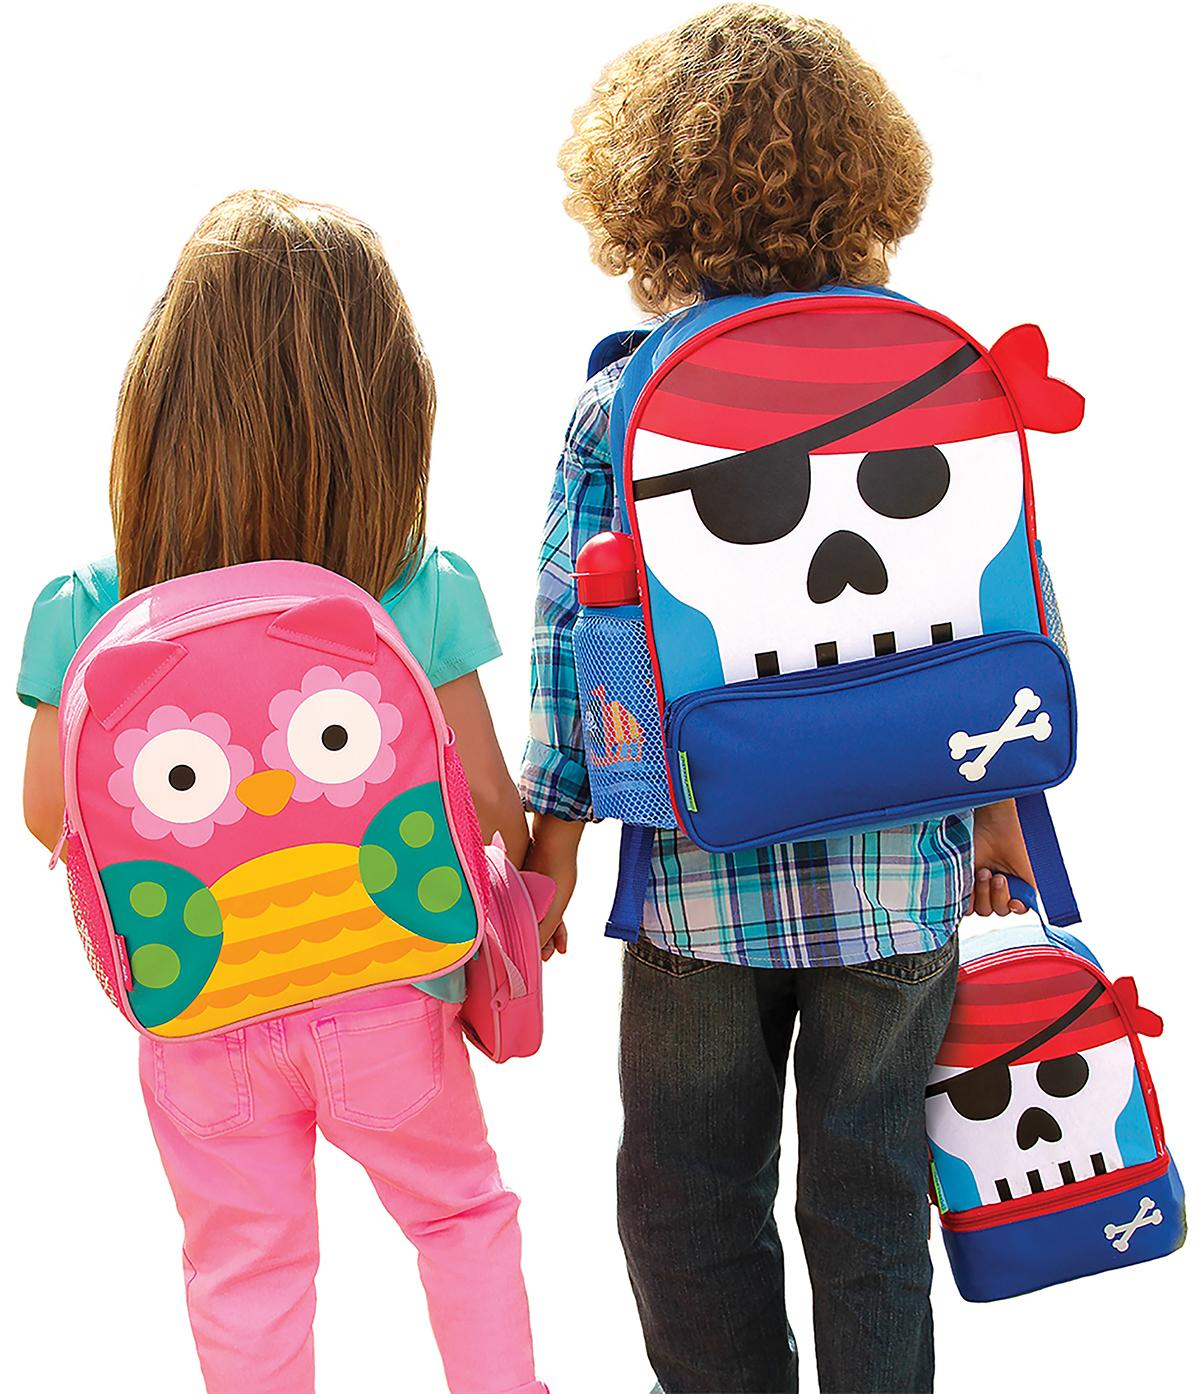 123b4d1bc1 Amazon.com  Stephen Joseph Mini Sidekicks Backpack